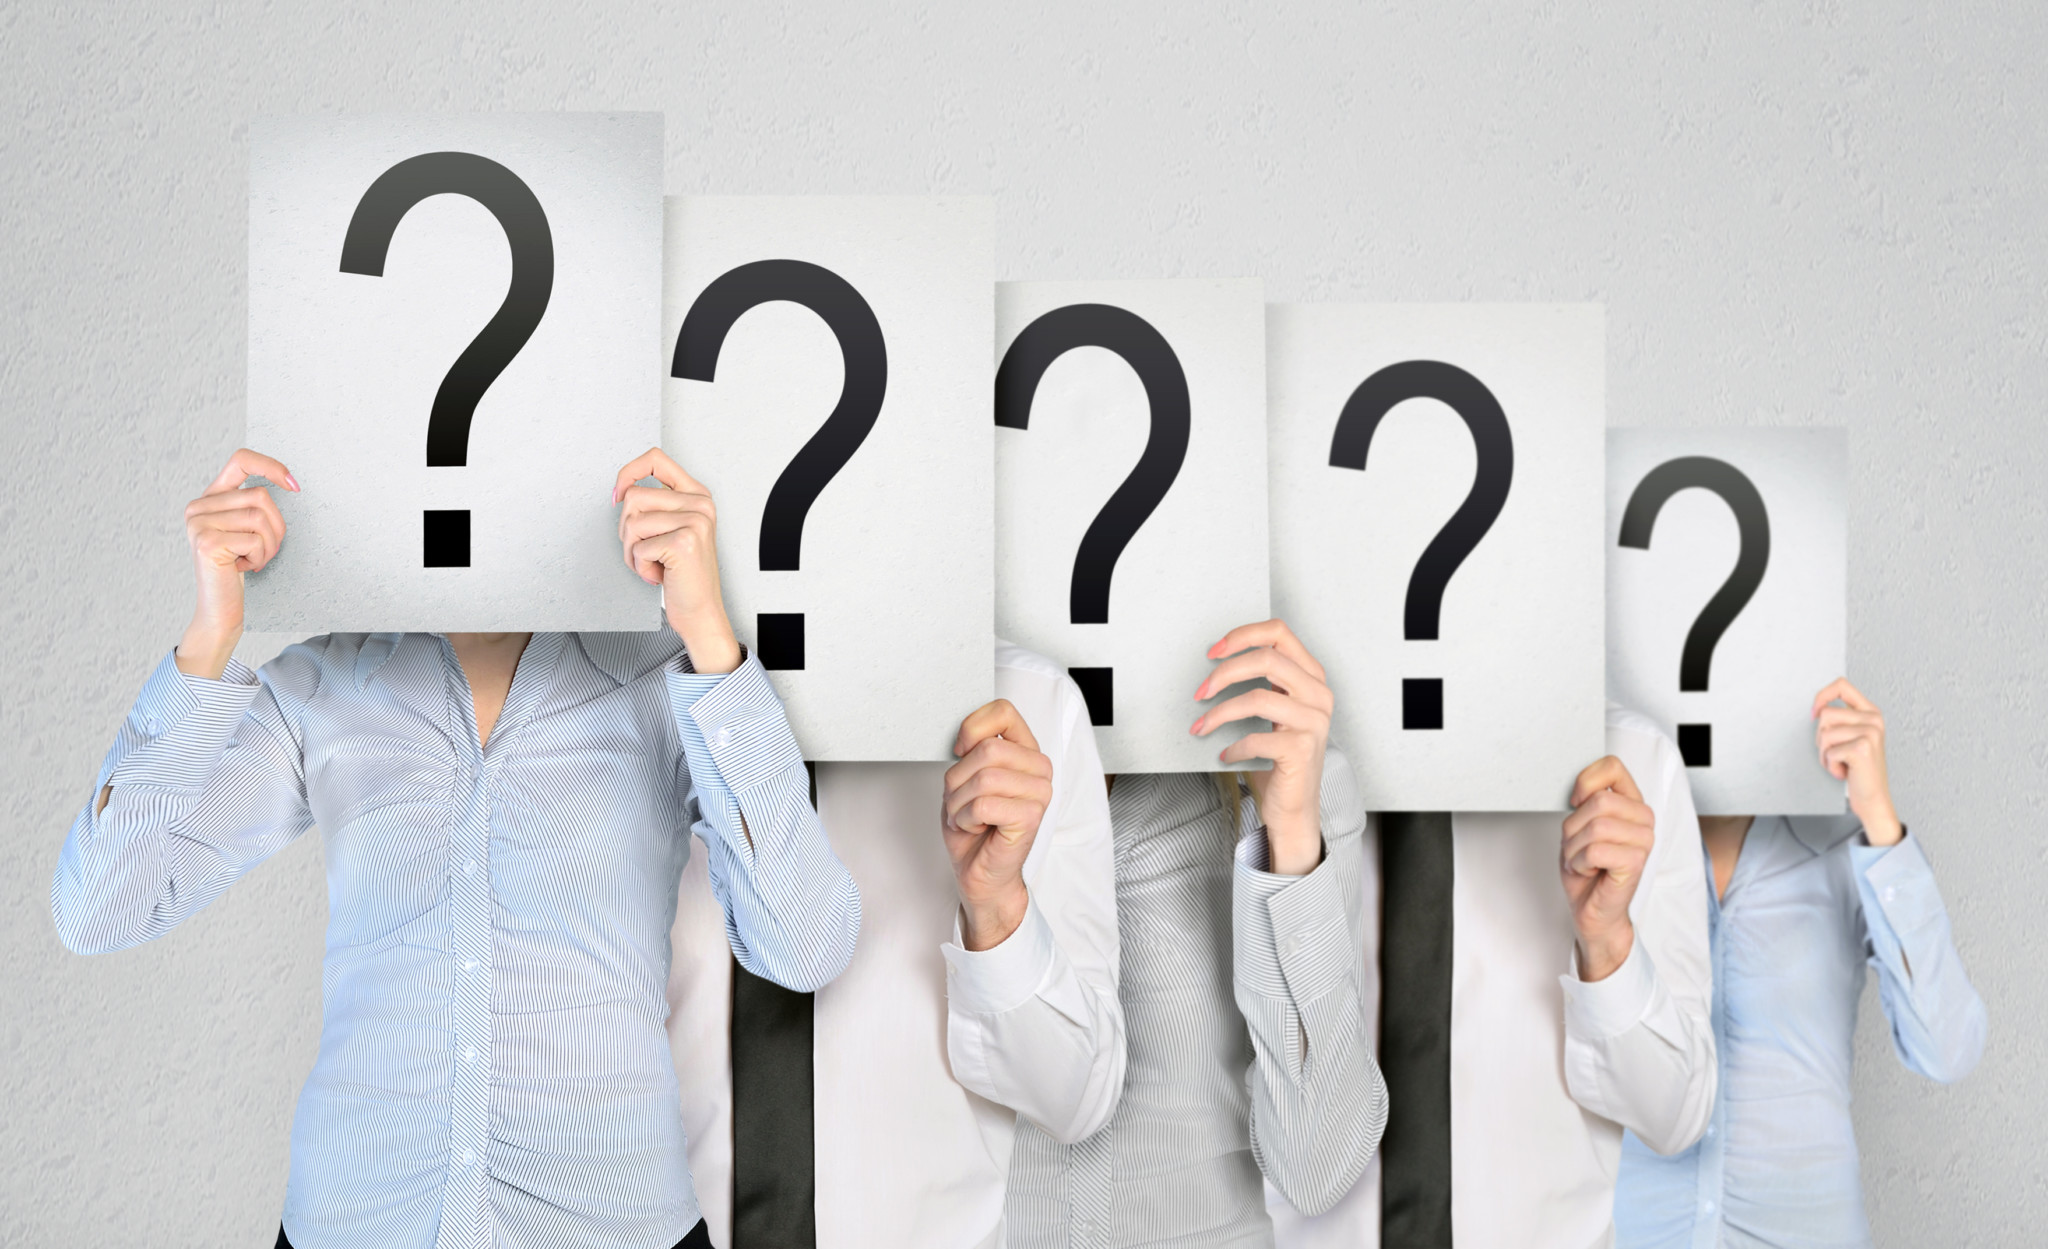 Figuring our where to advertise - image with question marks